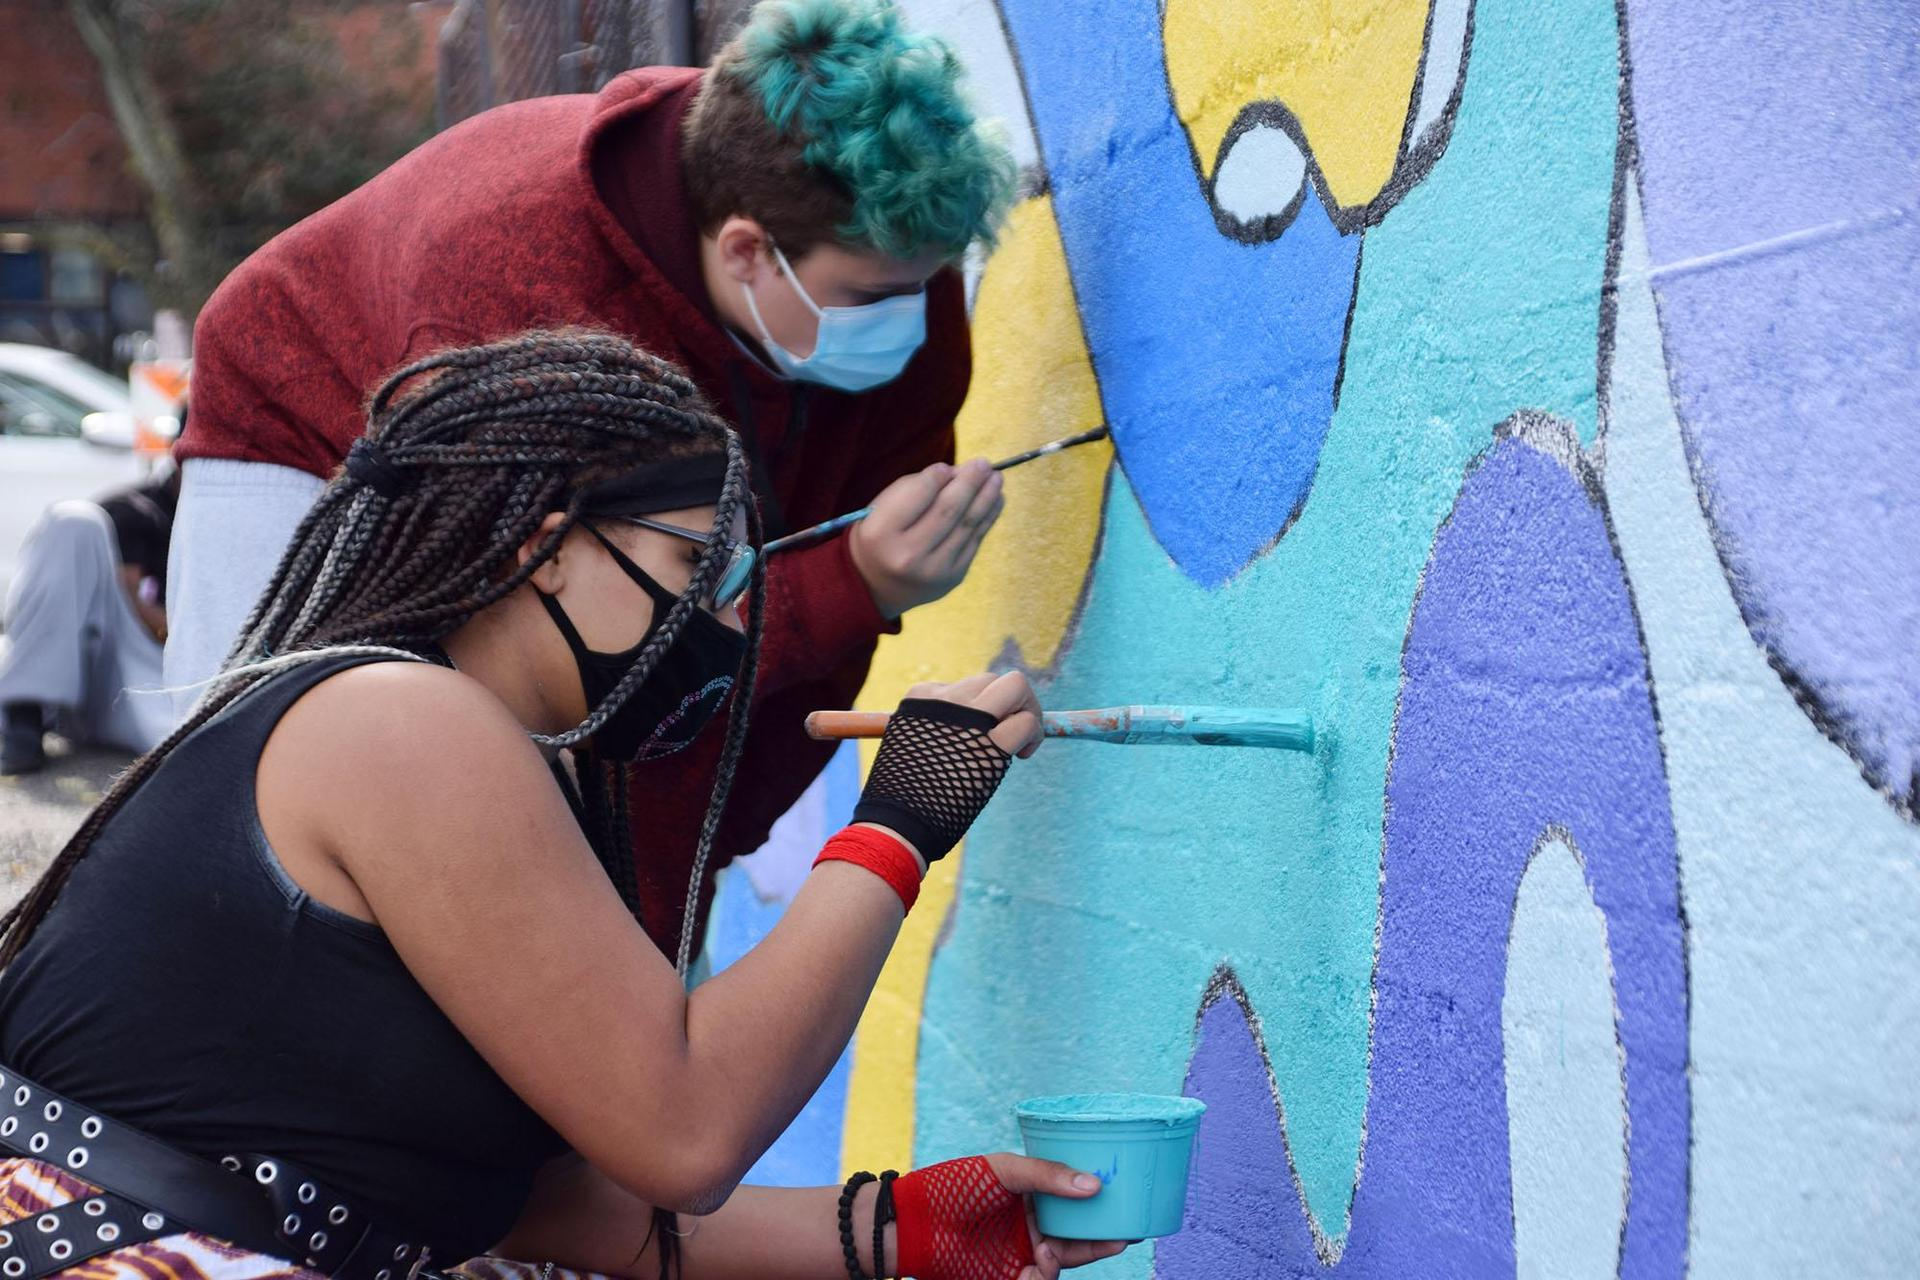 Two women work on the mural together